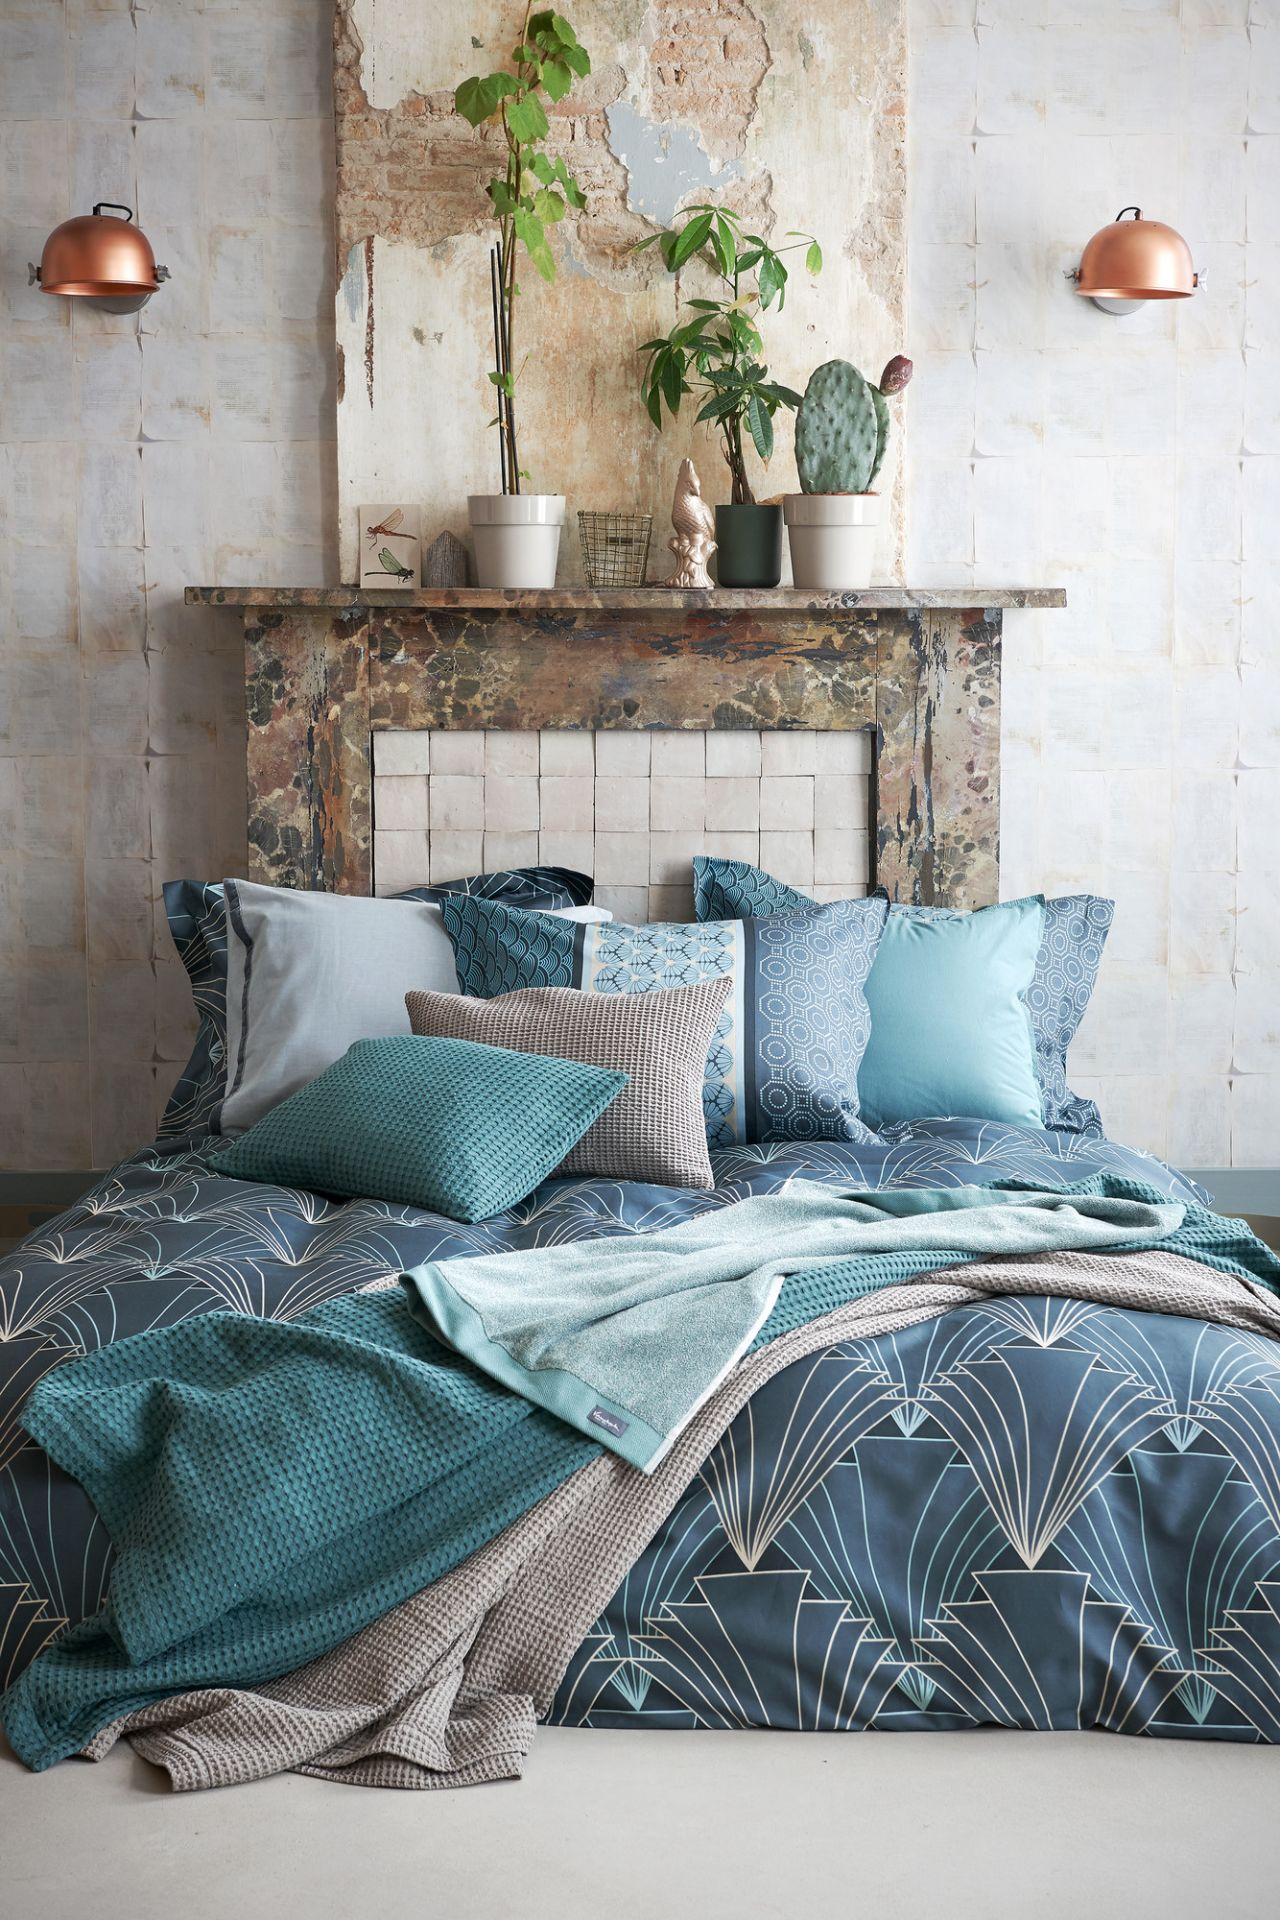 VanDyck bedtextiel Alpha, Style 166 Vintage green, Washed cotton 166 vintage green, Pure 16 184 faded denim, Home 71 048 Sand, Home pique waffel 166 vintage green bij Touwen Wonen & Slapen in [[plaatsnaam]